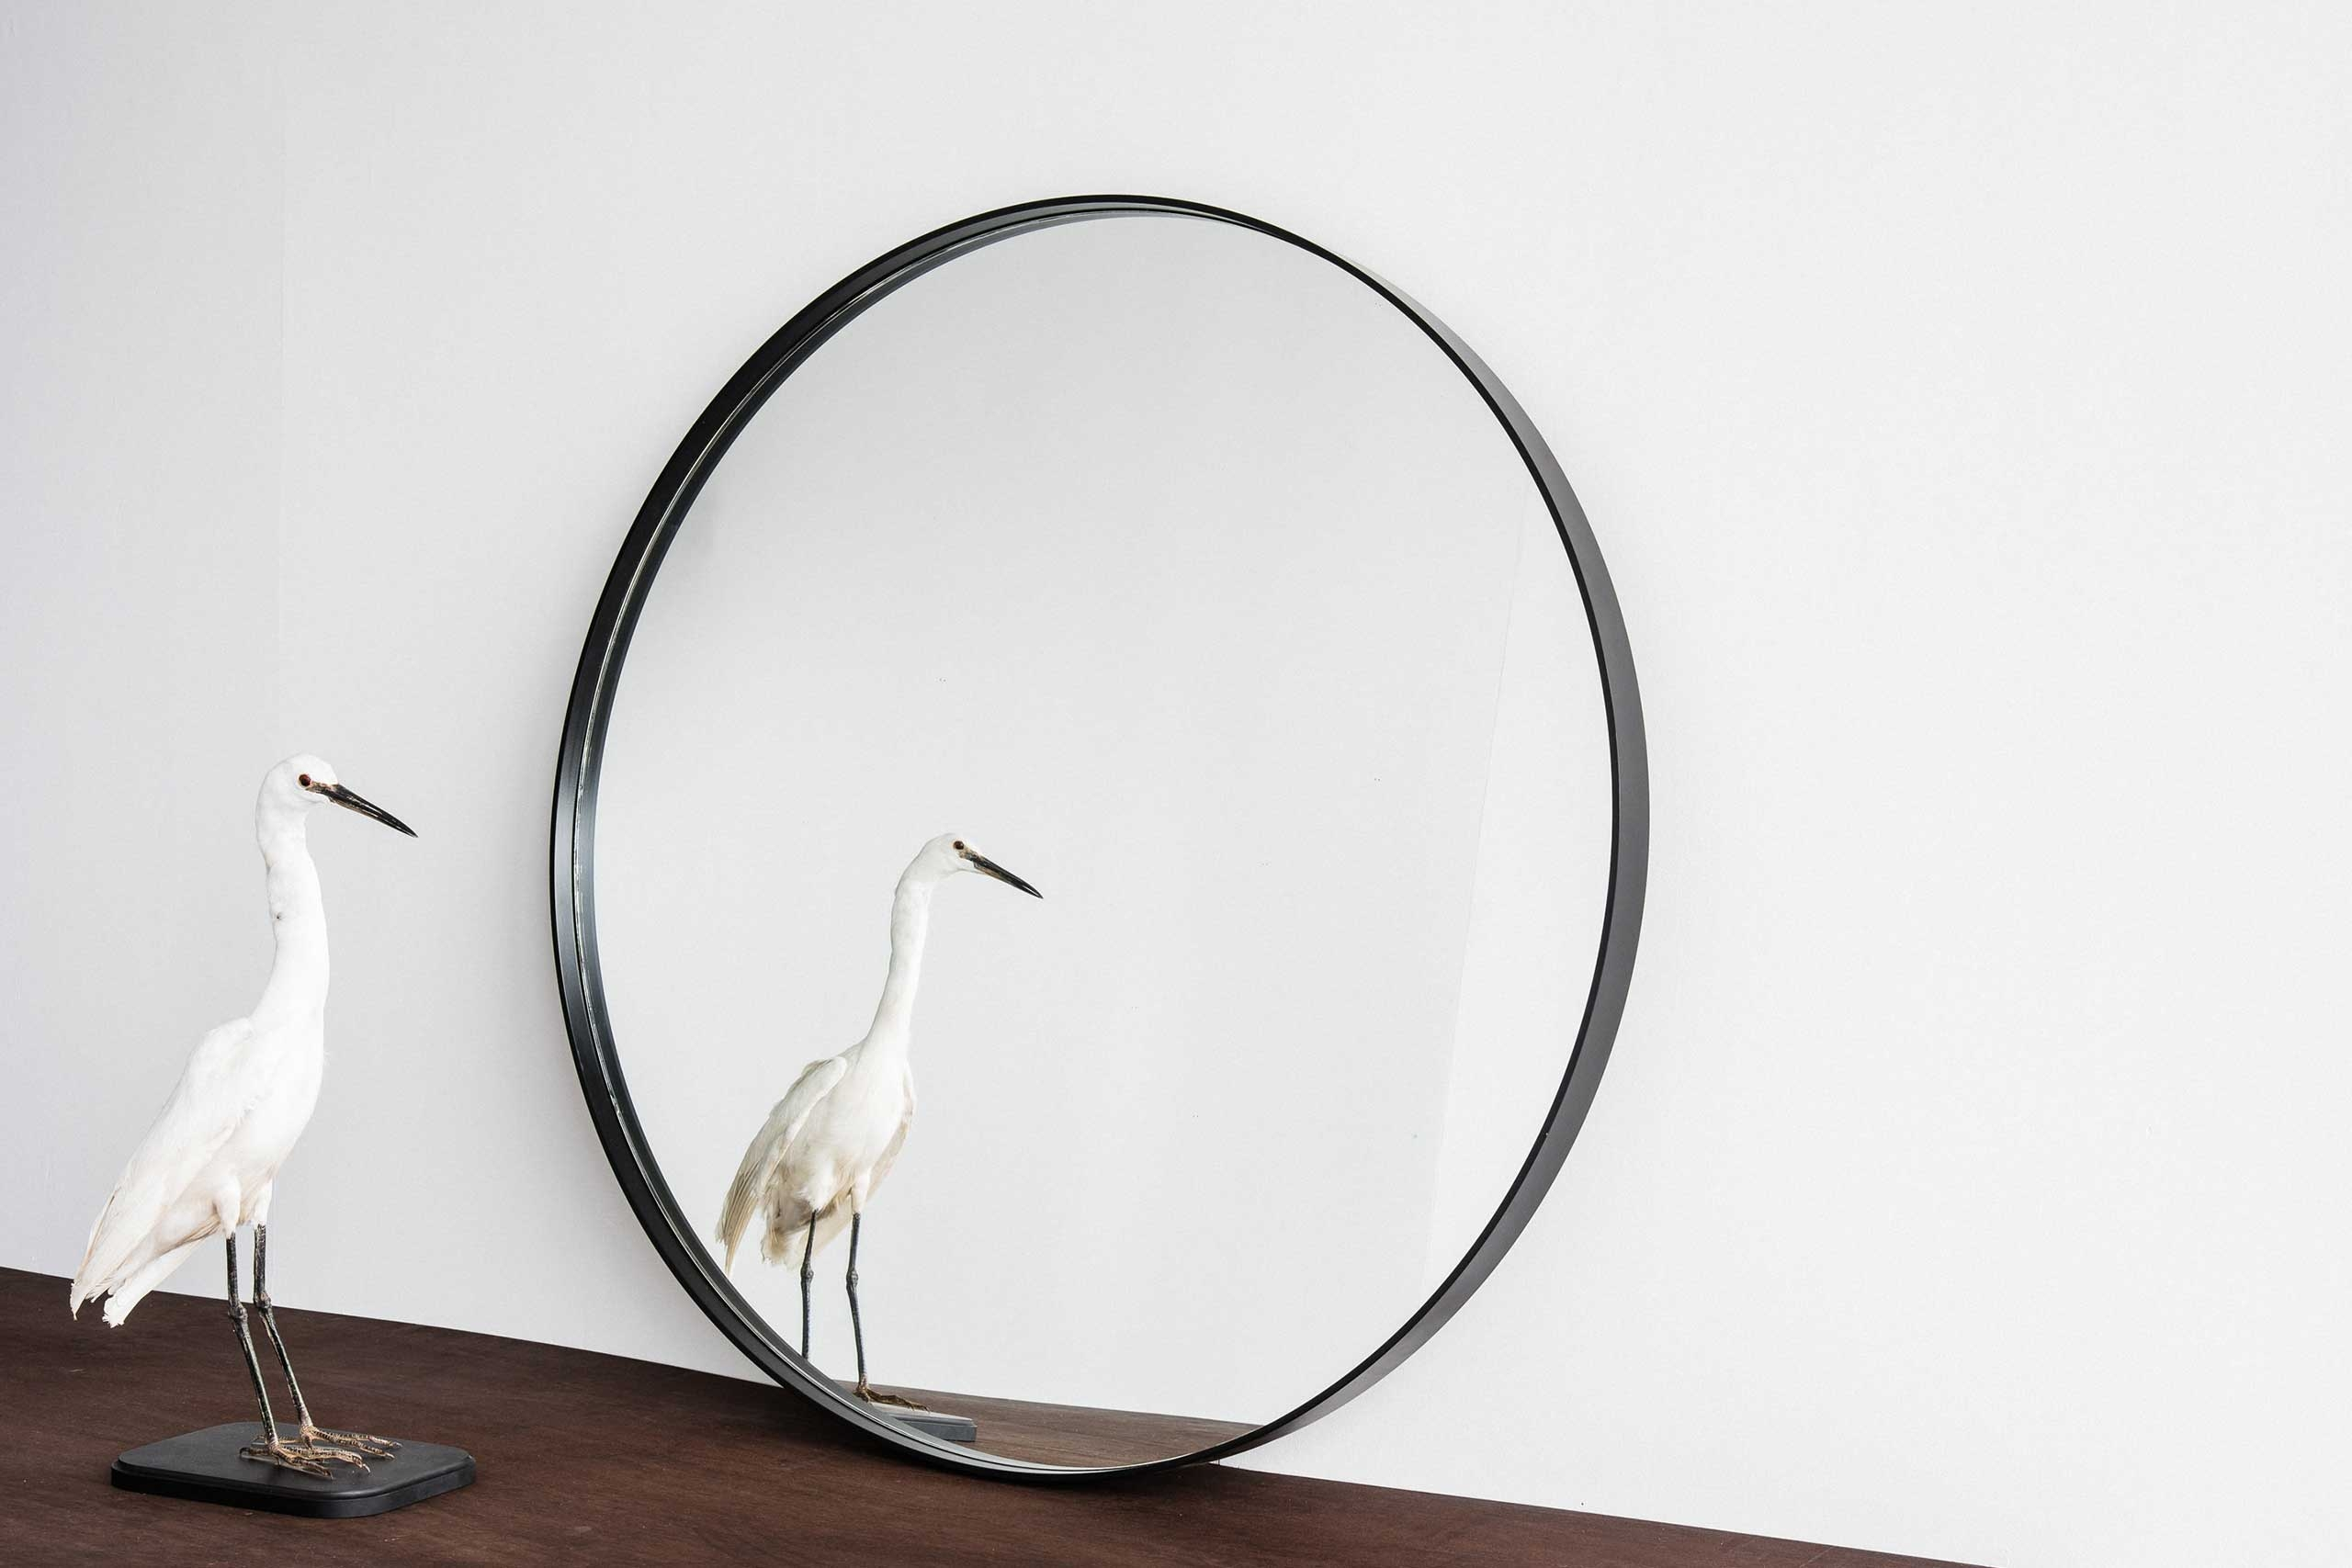 Home Industry Furniture Designed Handcrafted In New Zealand 2016 Throughout Black Circle Mirrors (Image 6 of 15)